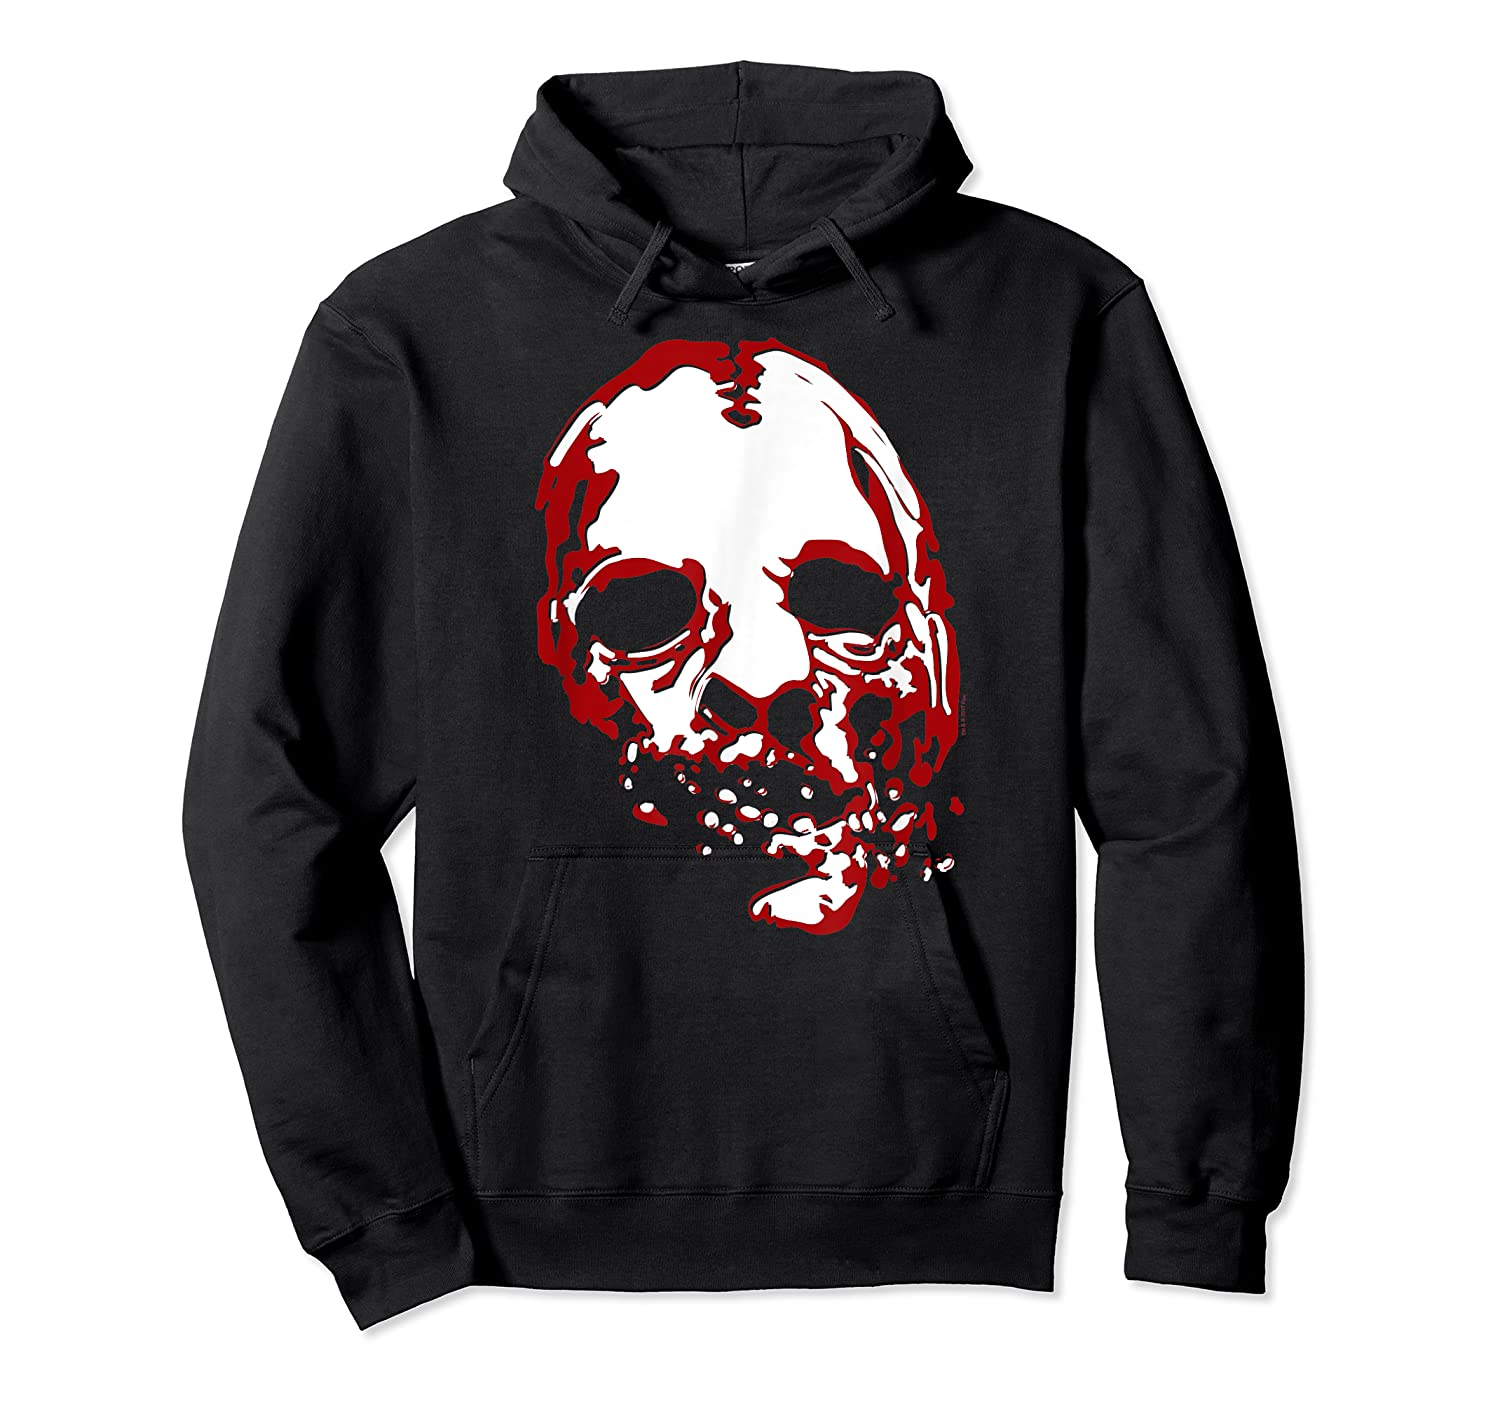 American Horror Story Asylum Bloody Face Shirts Unisex Pullover Hoodie